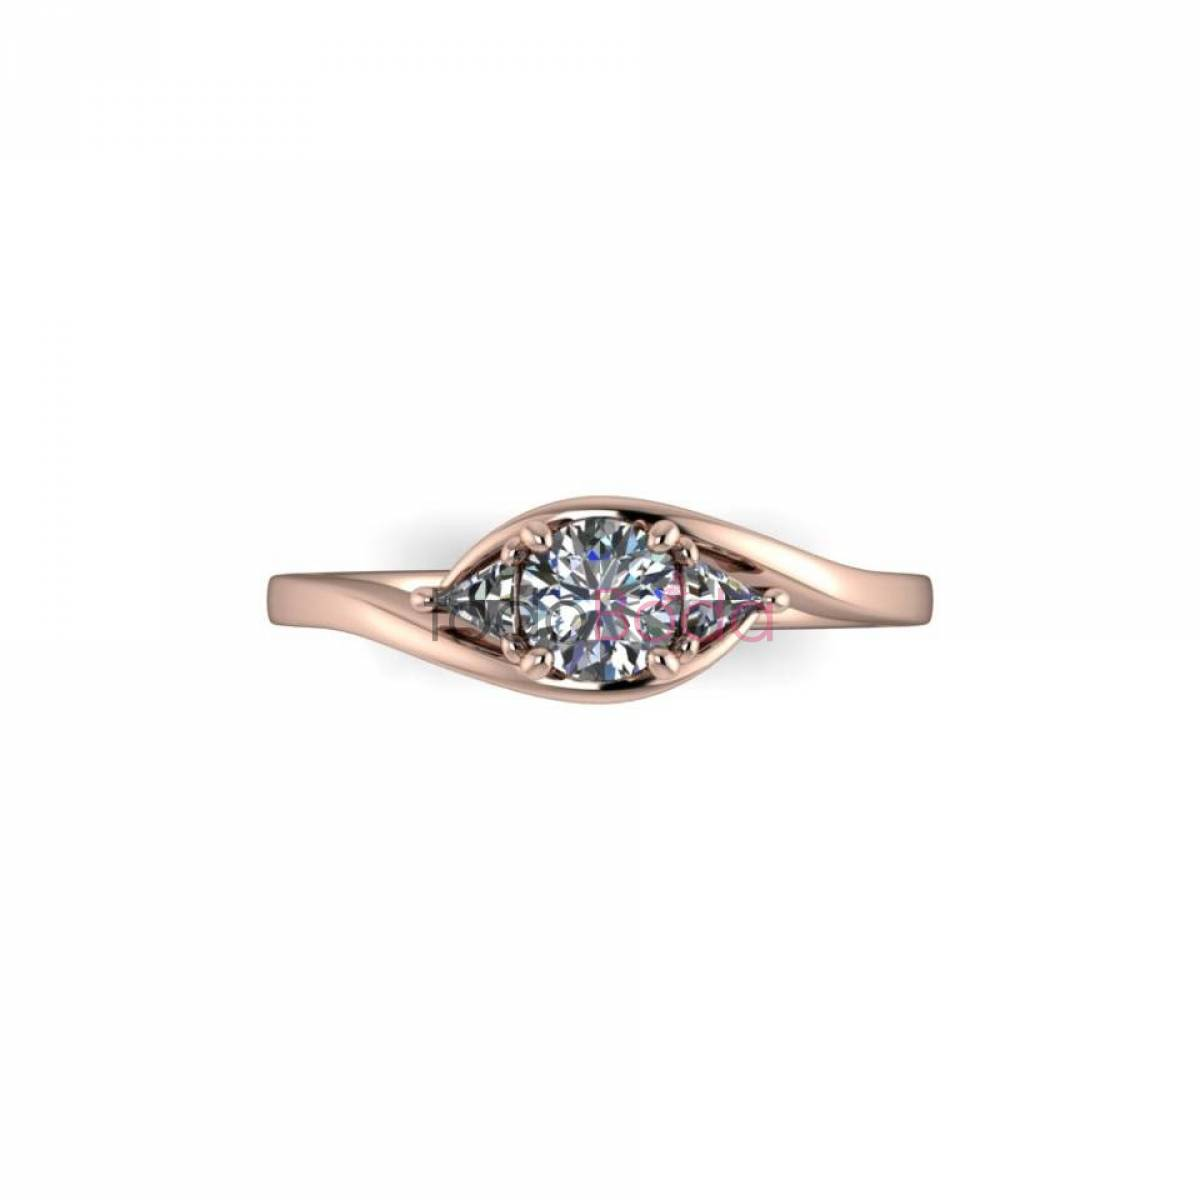 Anillo Oro Rosa con Diamante talla Brillante y Diamantes talla Trilliant 02